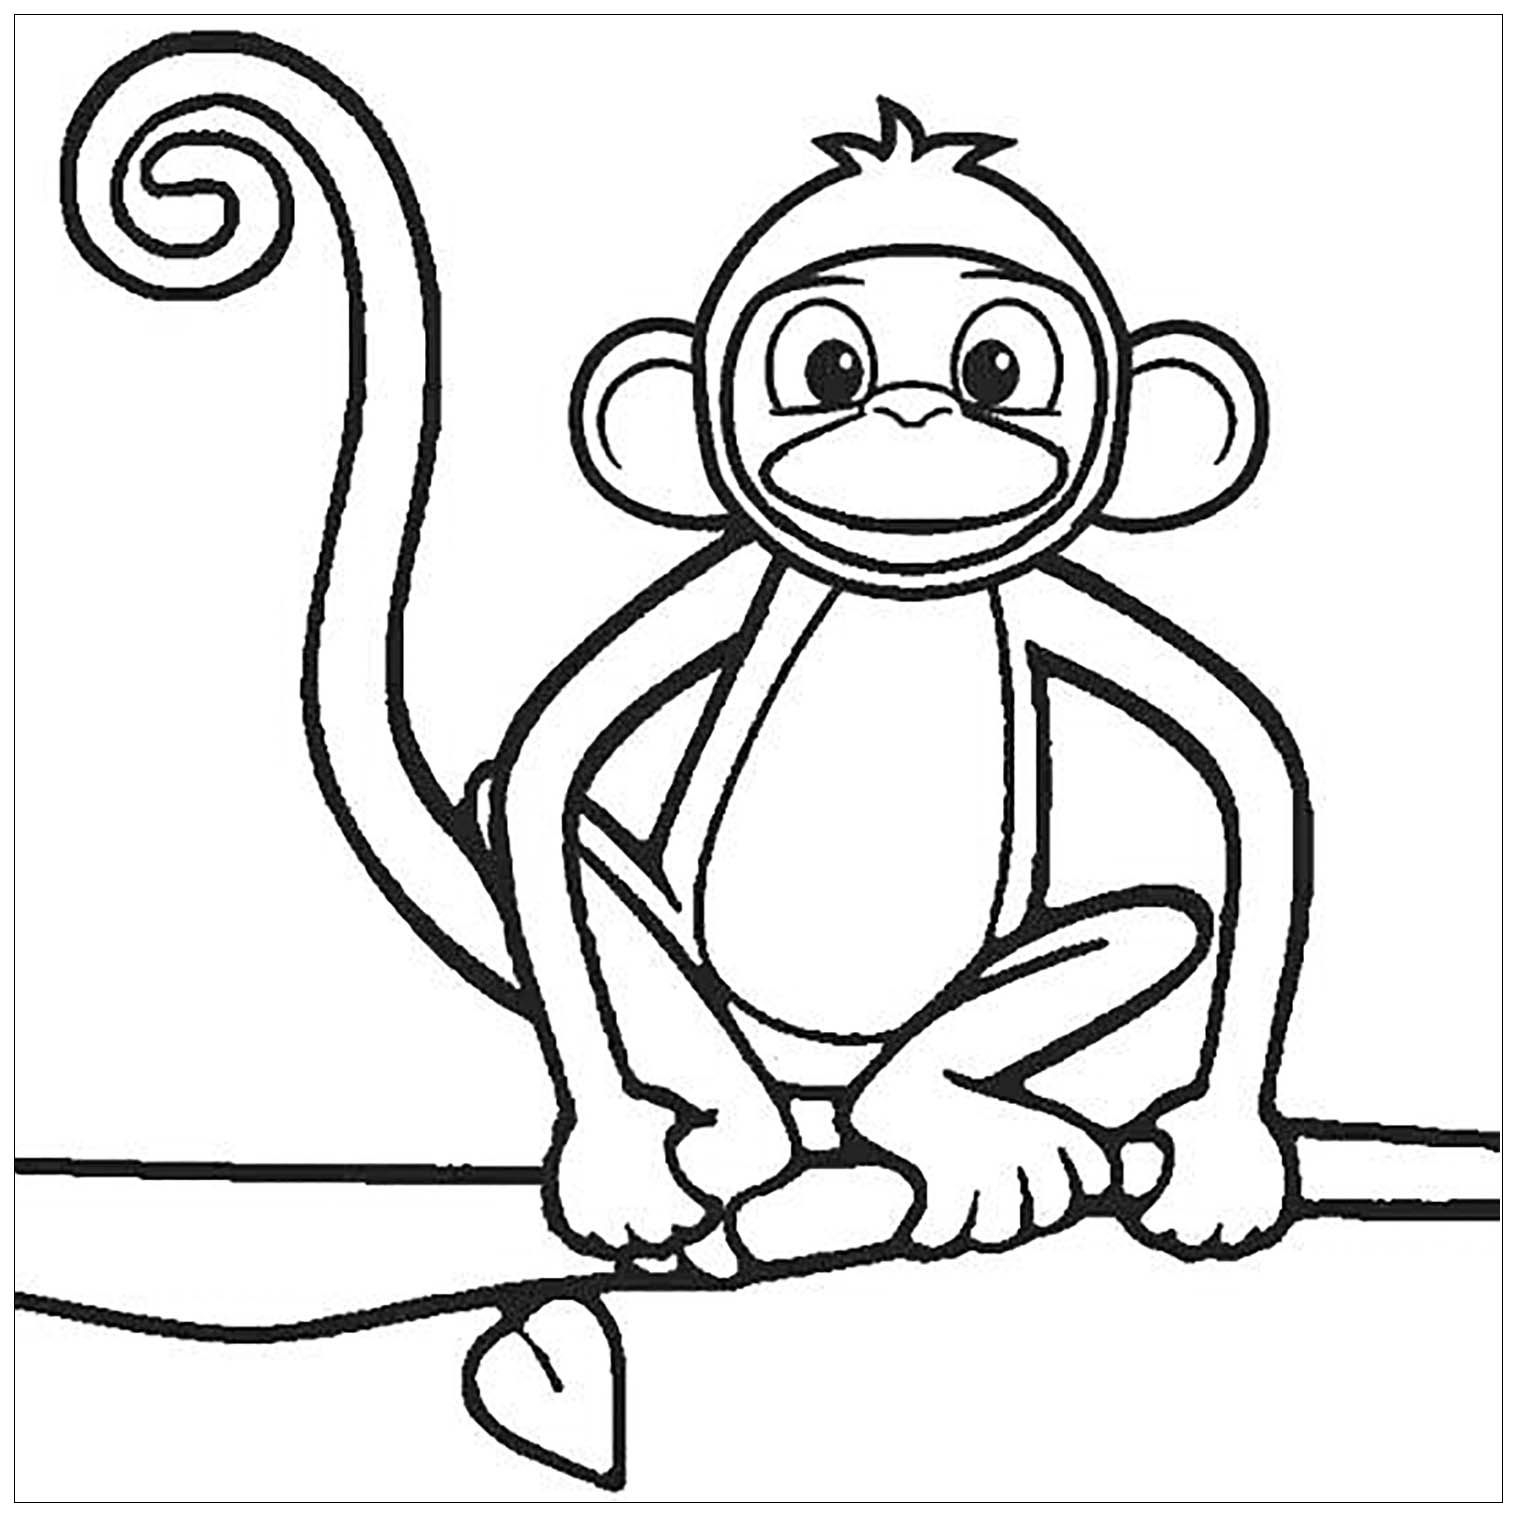 - Monkeys To Color For Kids - Monkeys Kids Coloring Pages